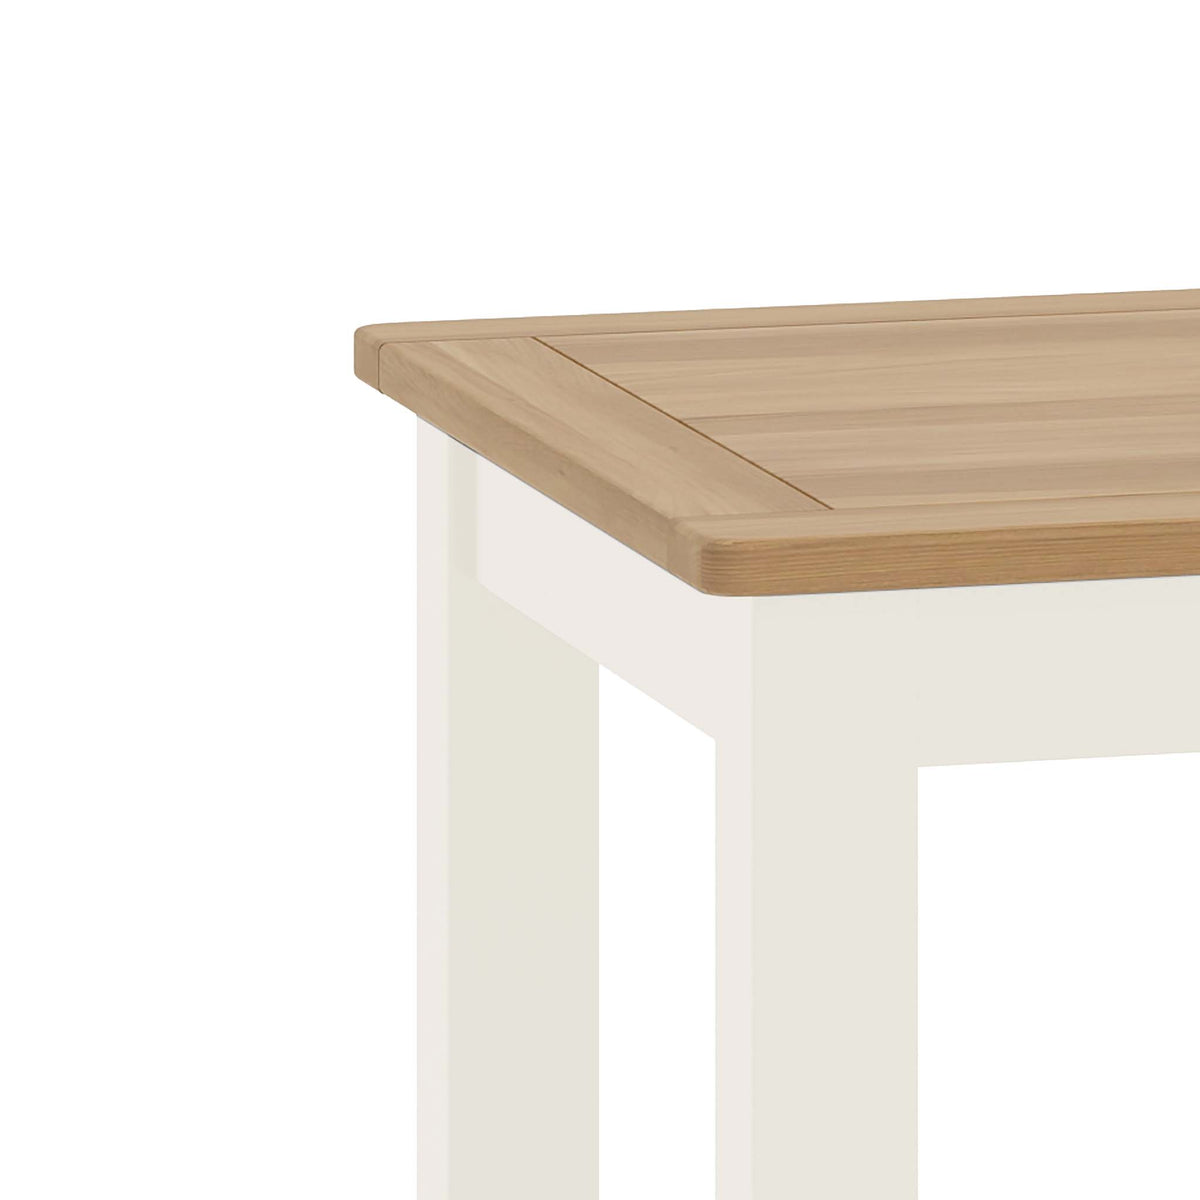 The Padstow White Wooden Dining Table - Close Up of Oak Table Top